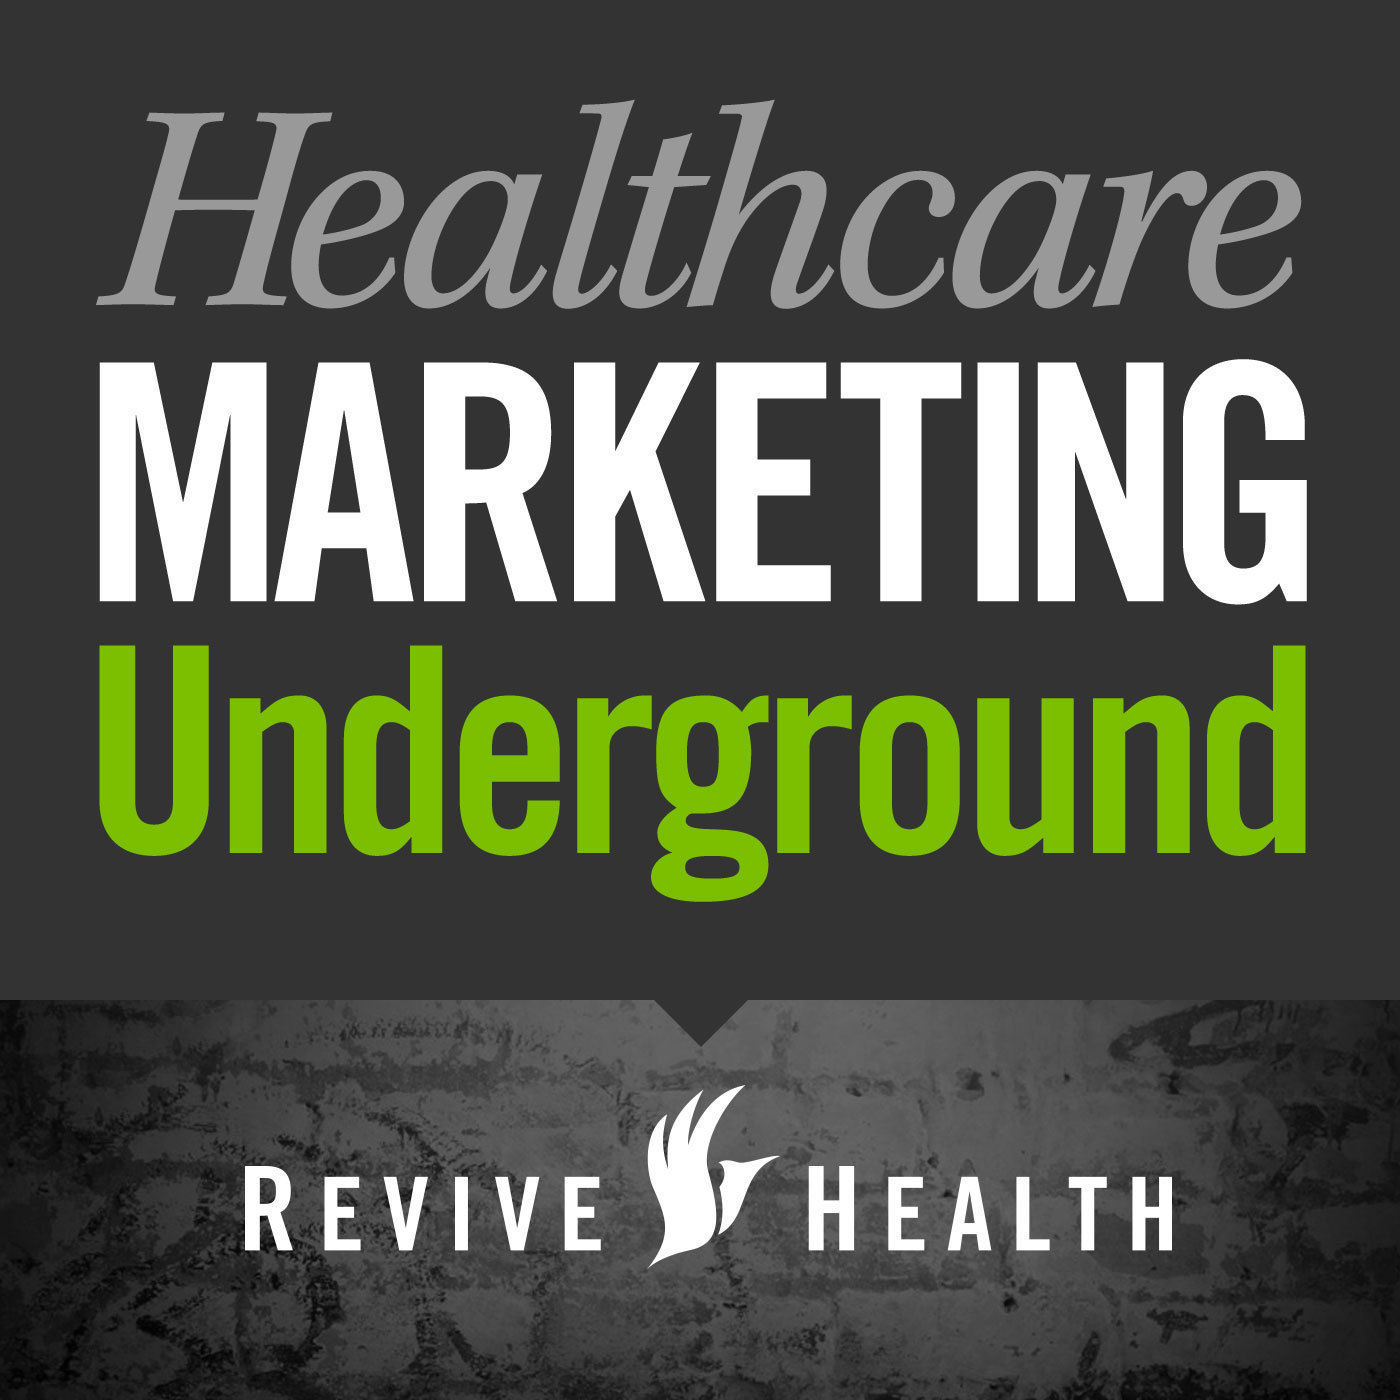 Healthcare Marketing Underground